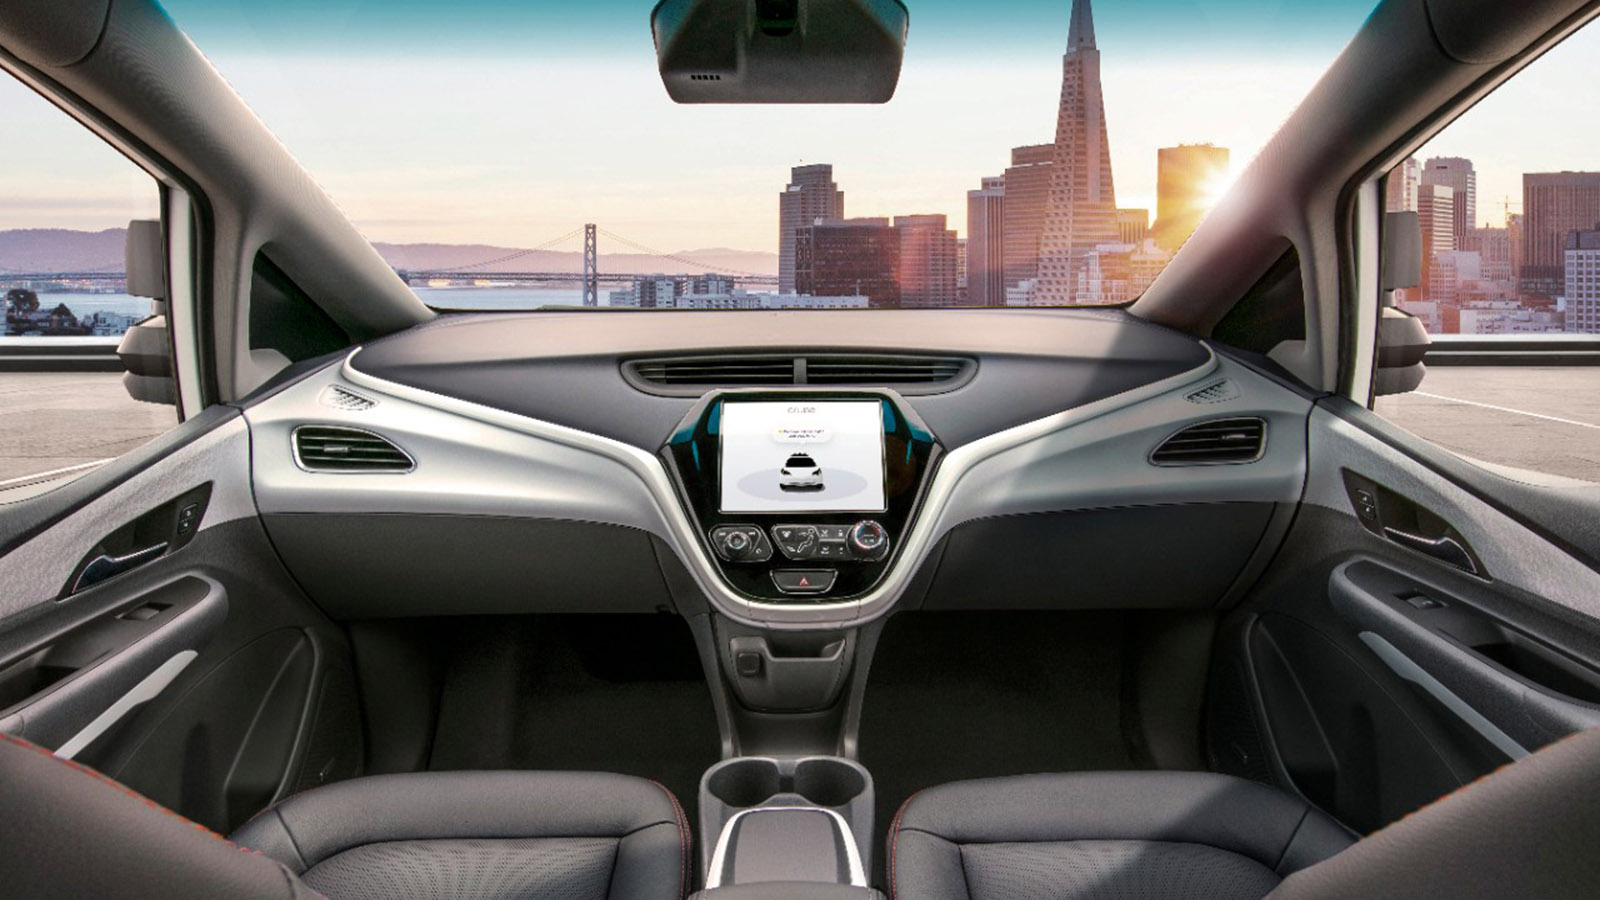 The Gm Car That Has No Steering Wheel Or Pedals Howstuffworks